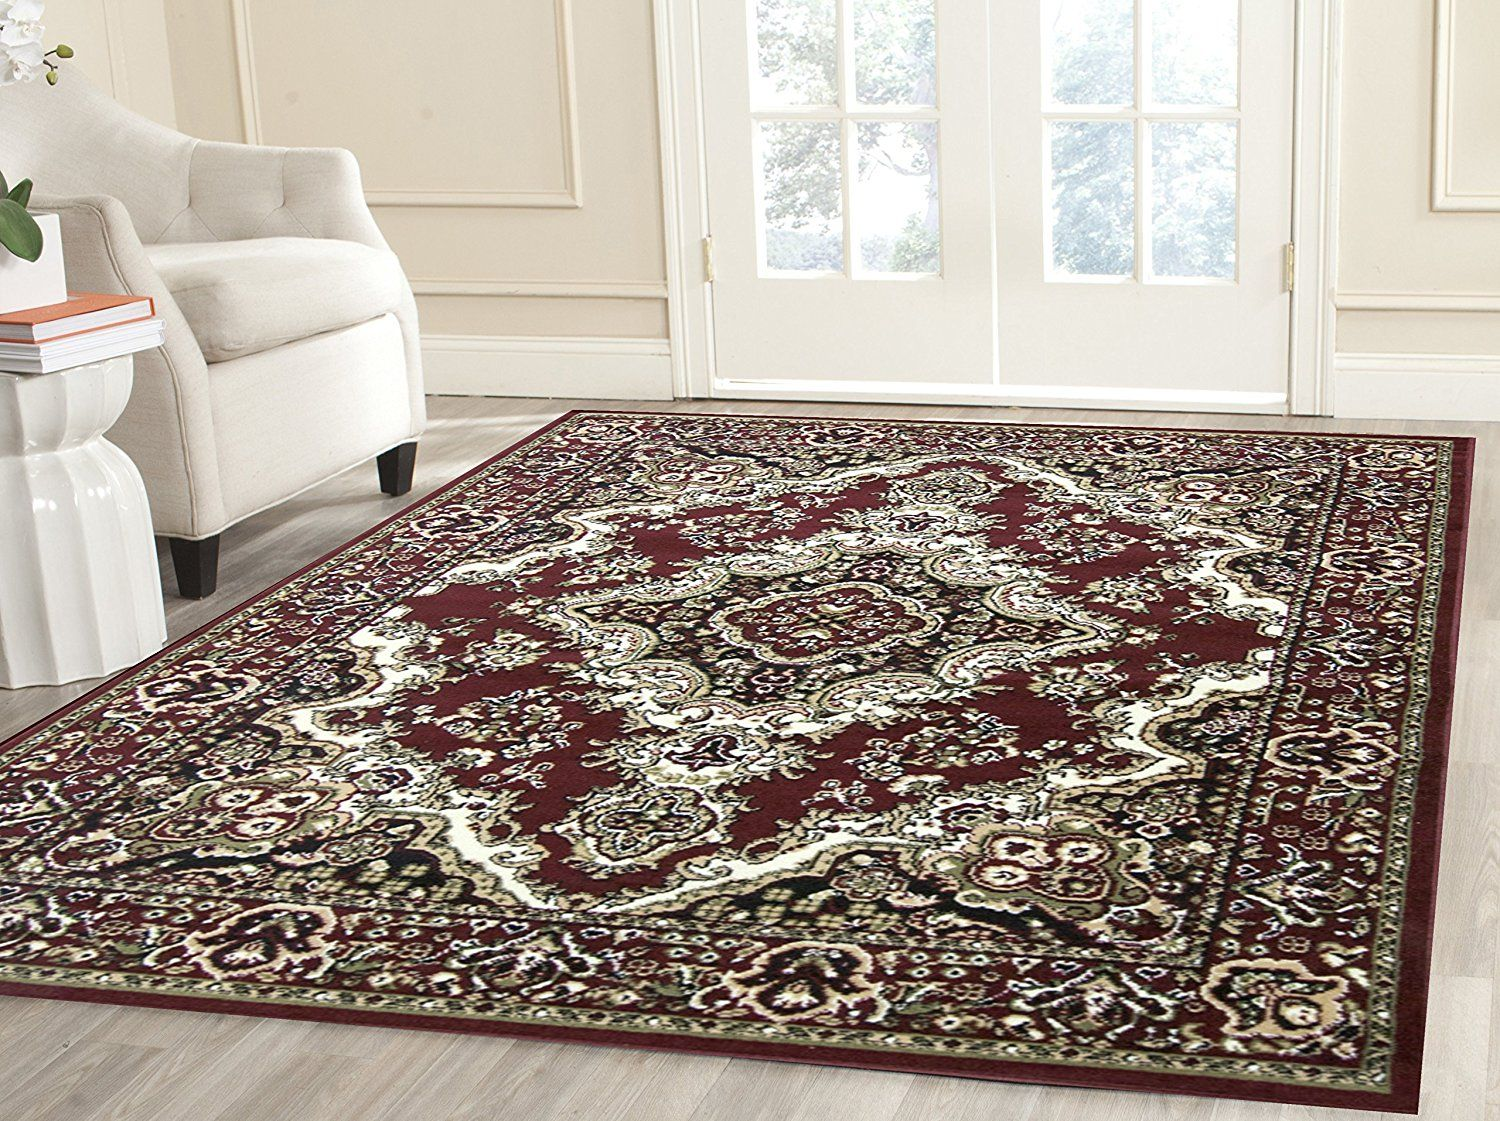 Amazon Com 108 Area Rugs 8x10 Clearance Rugs For Living Room And